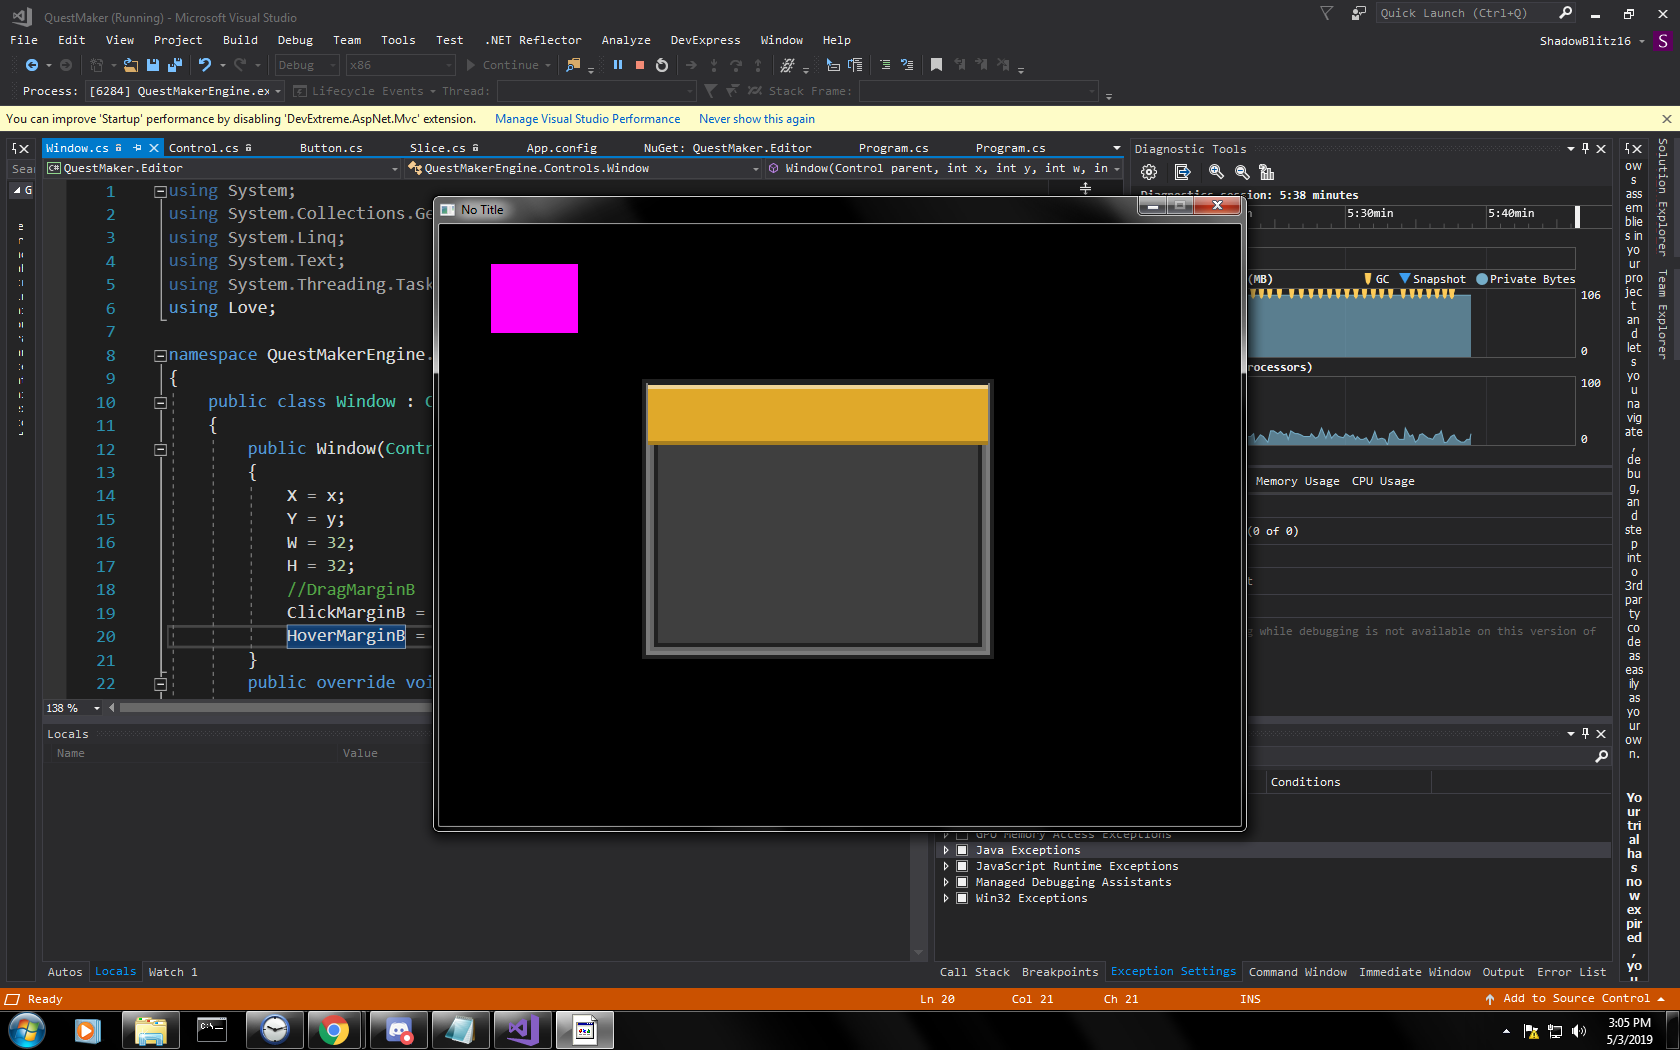 Love Graphics Rectangle is not pixel perfect after graphics Scale